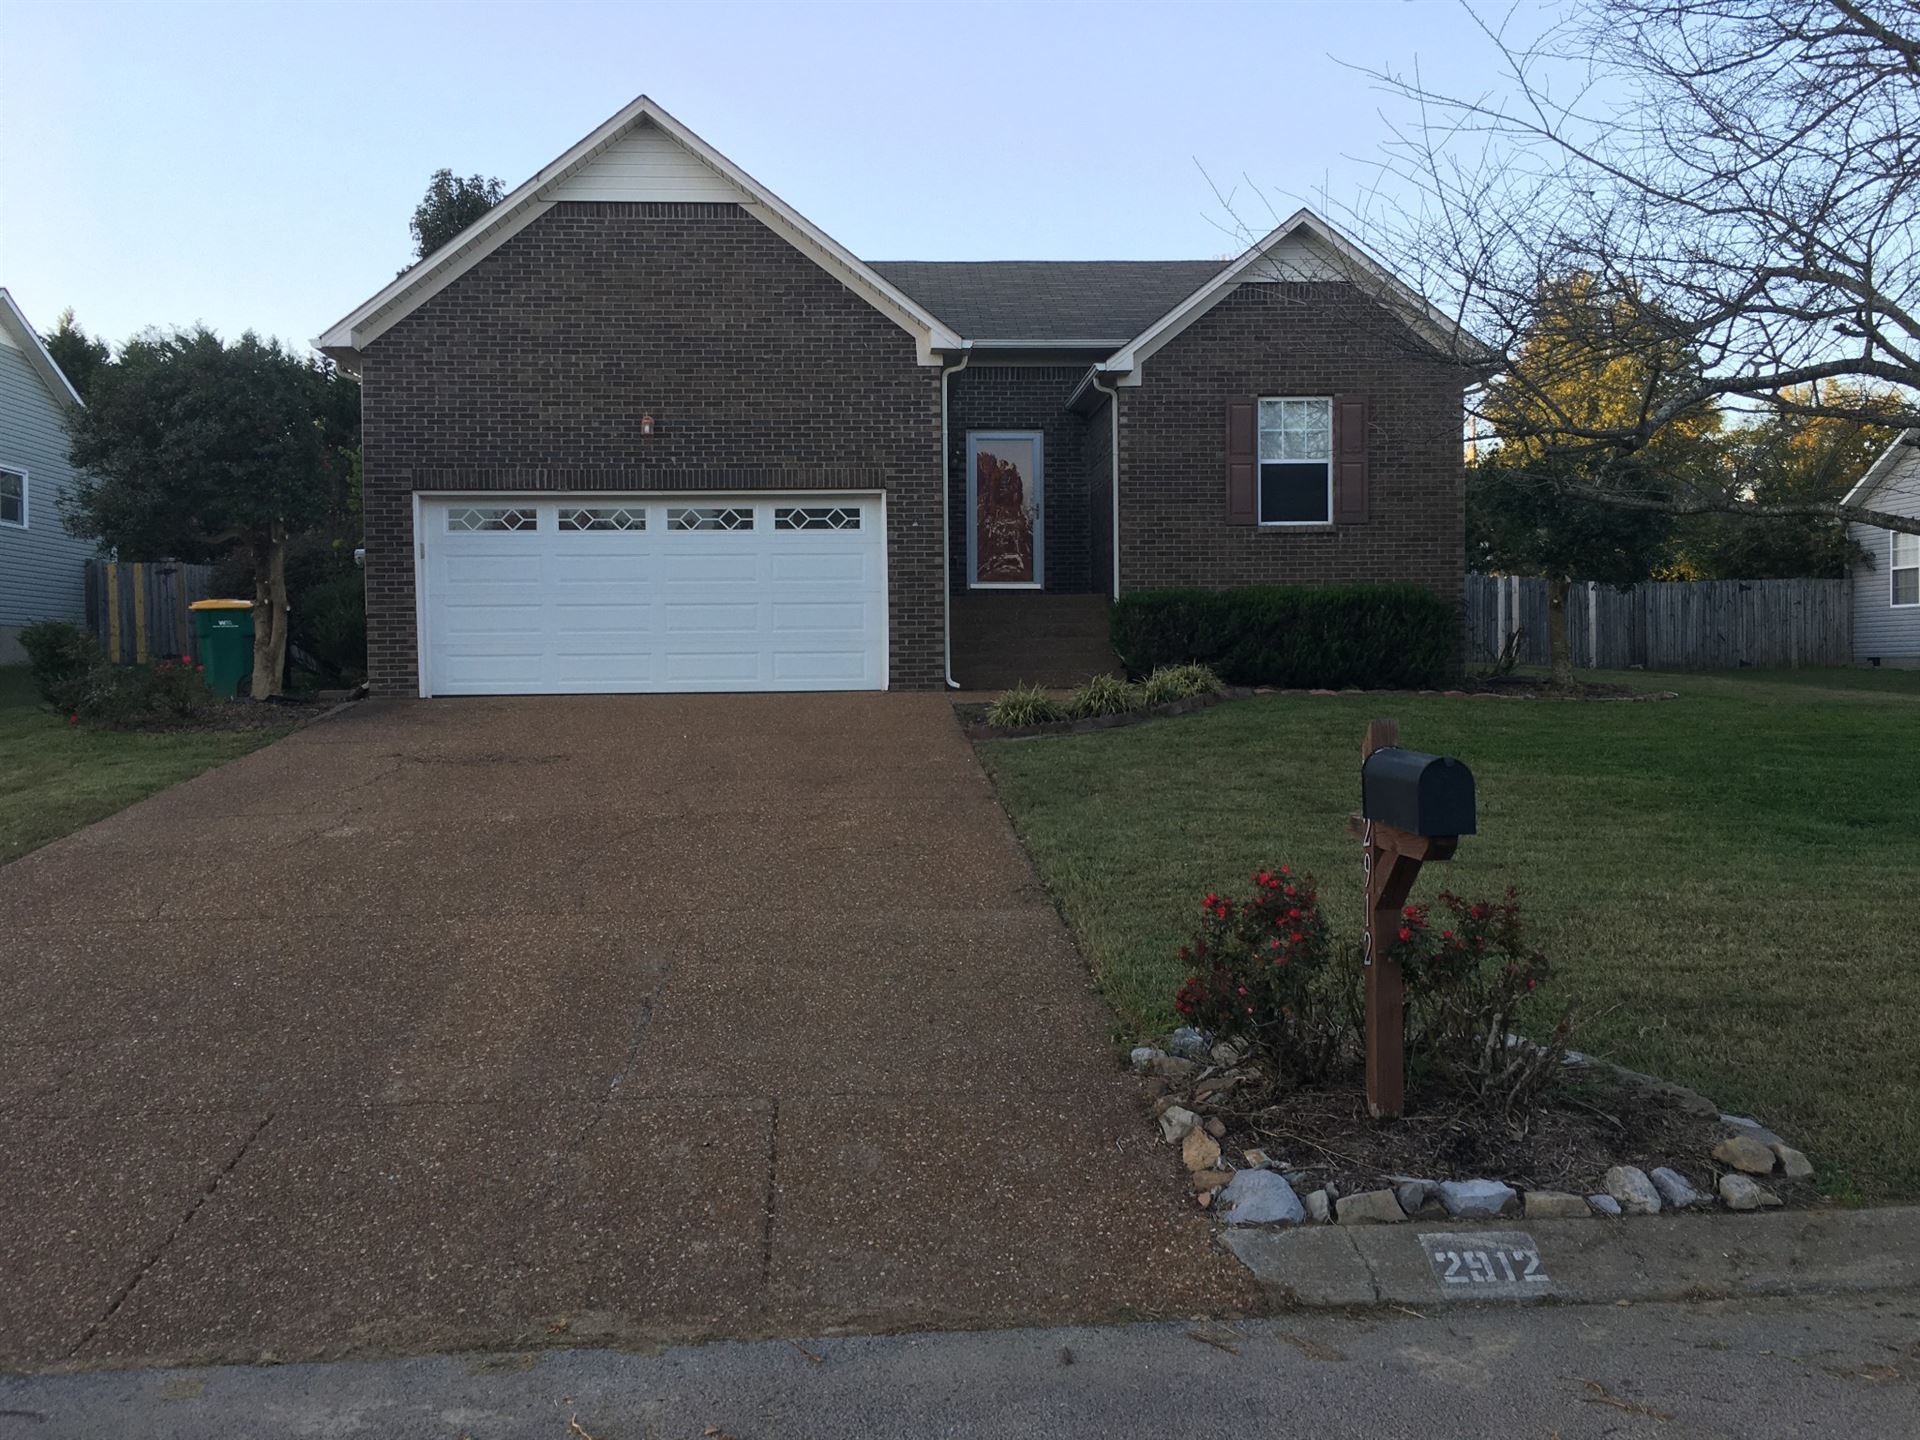 2912 Faldo Ln, Spring Hill, TN 37174 - MLS#: 2199278